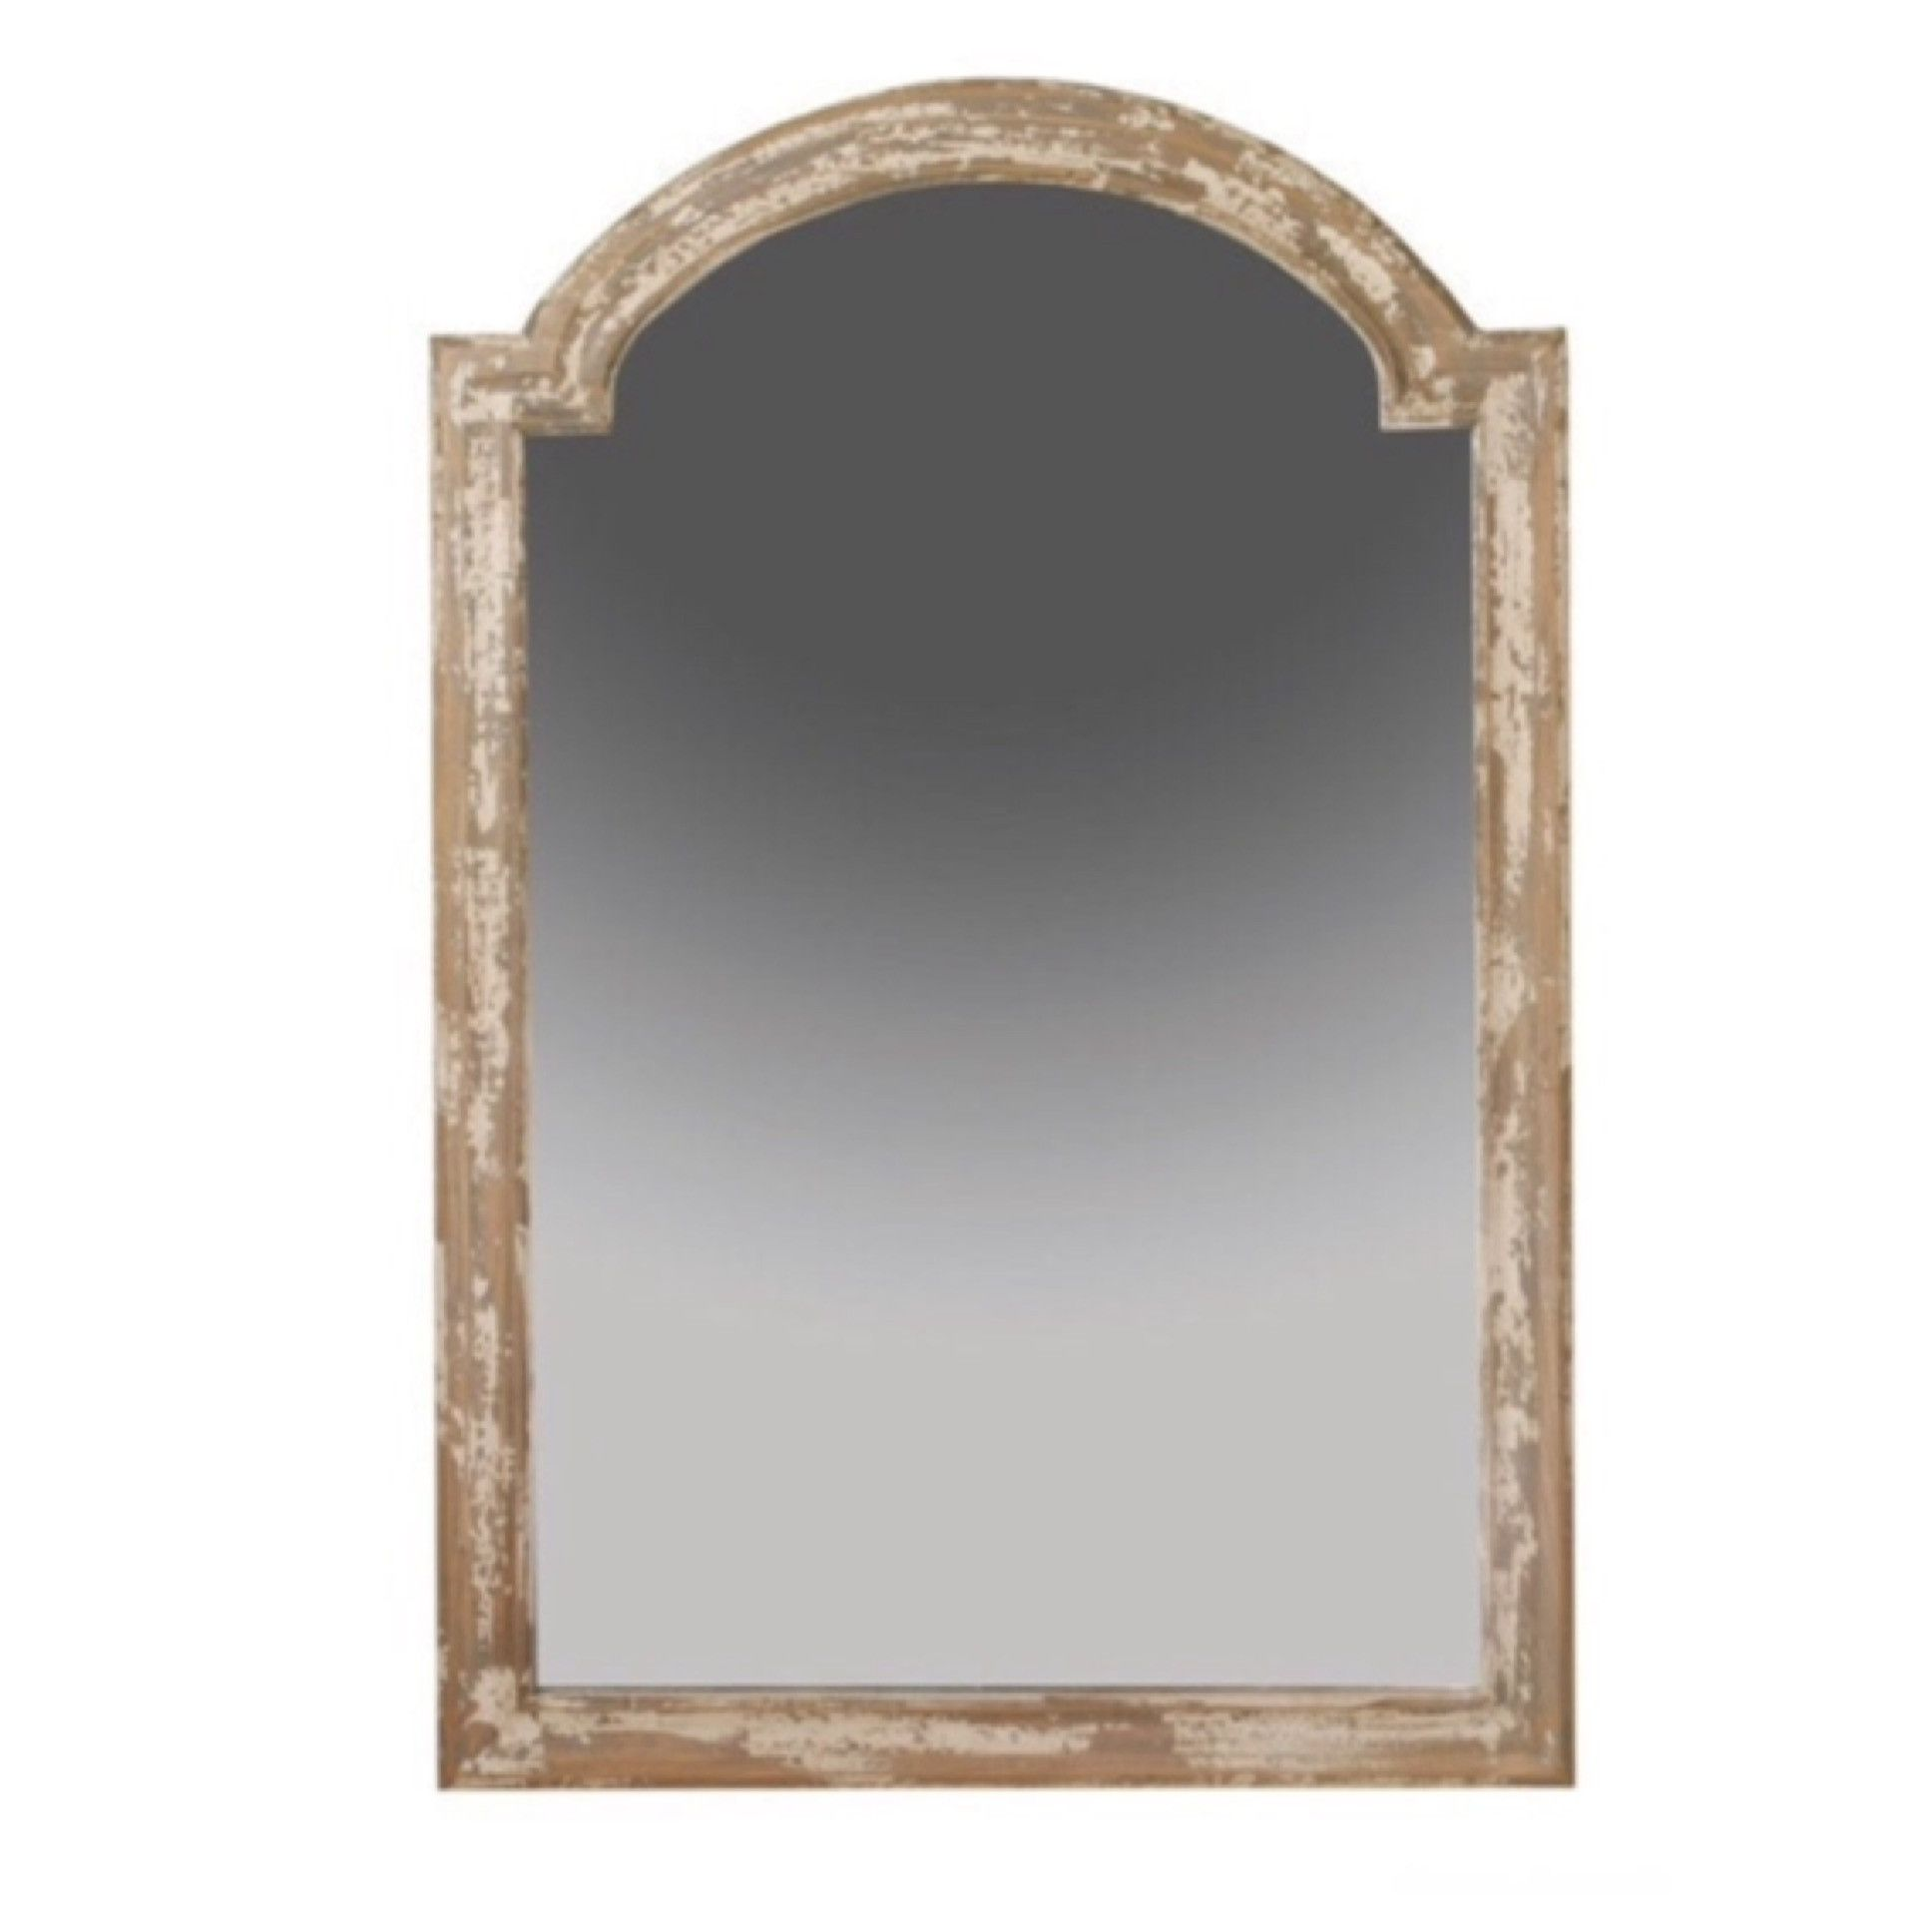 Distressed Arch Mirror 48 In 2020 Arch Mirror Distressed Wood Mirror Mantel Mirrors